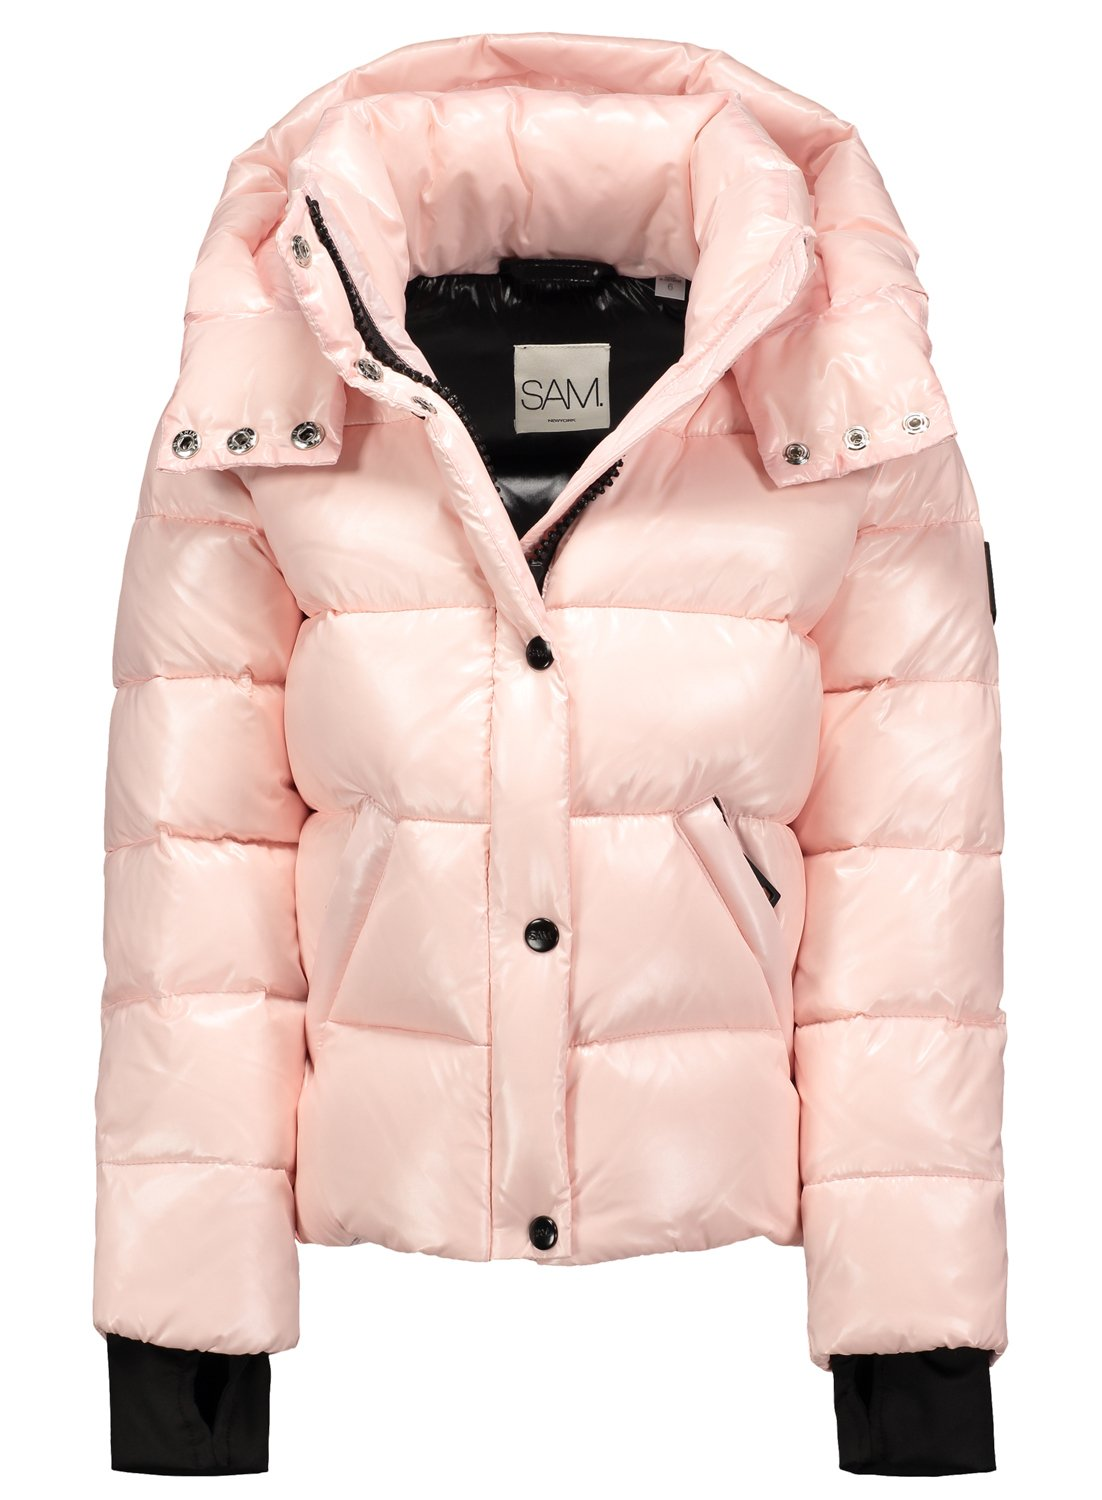 TODDLER GIRLS ANNABELLE TODDLER GIRLS ANNABELLE - SAM. New York Sam nyc jacket